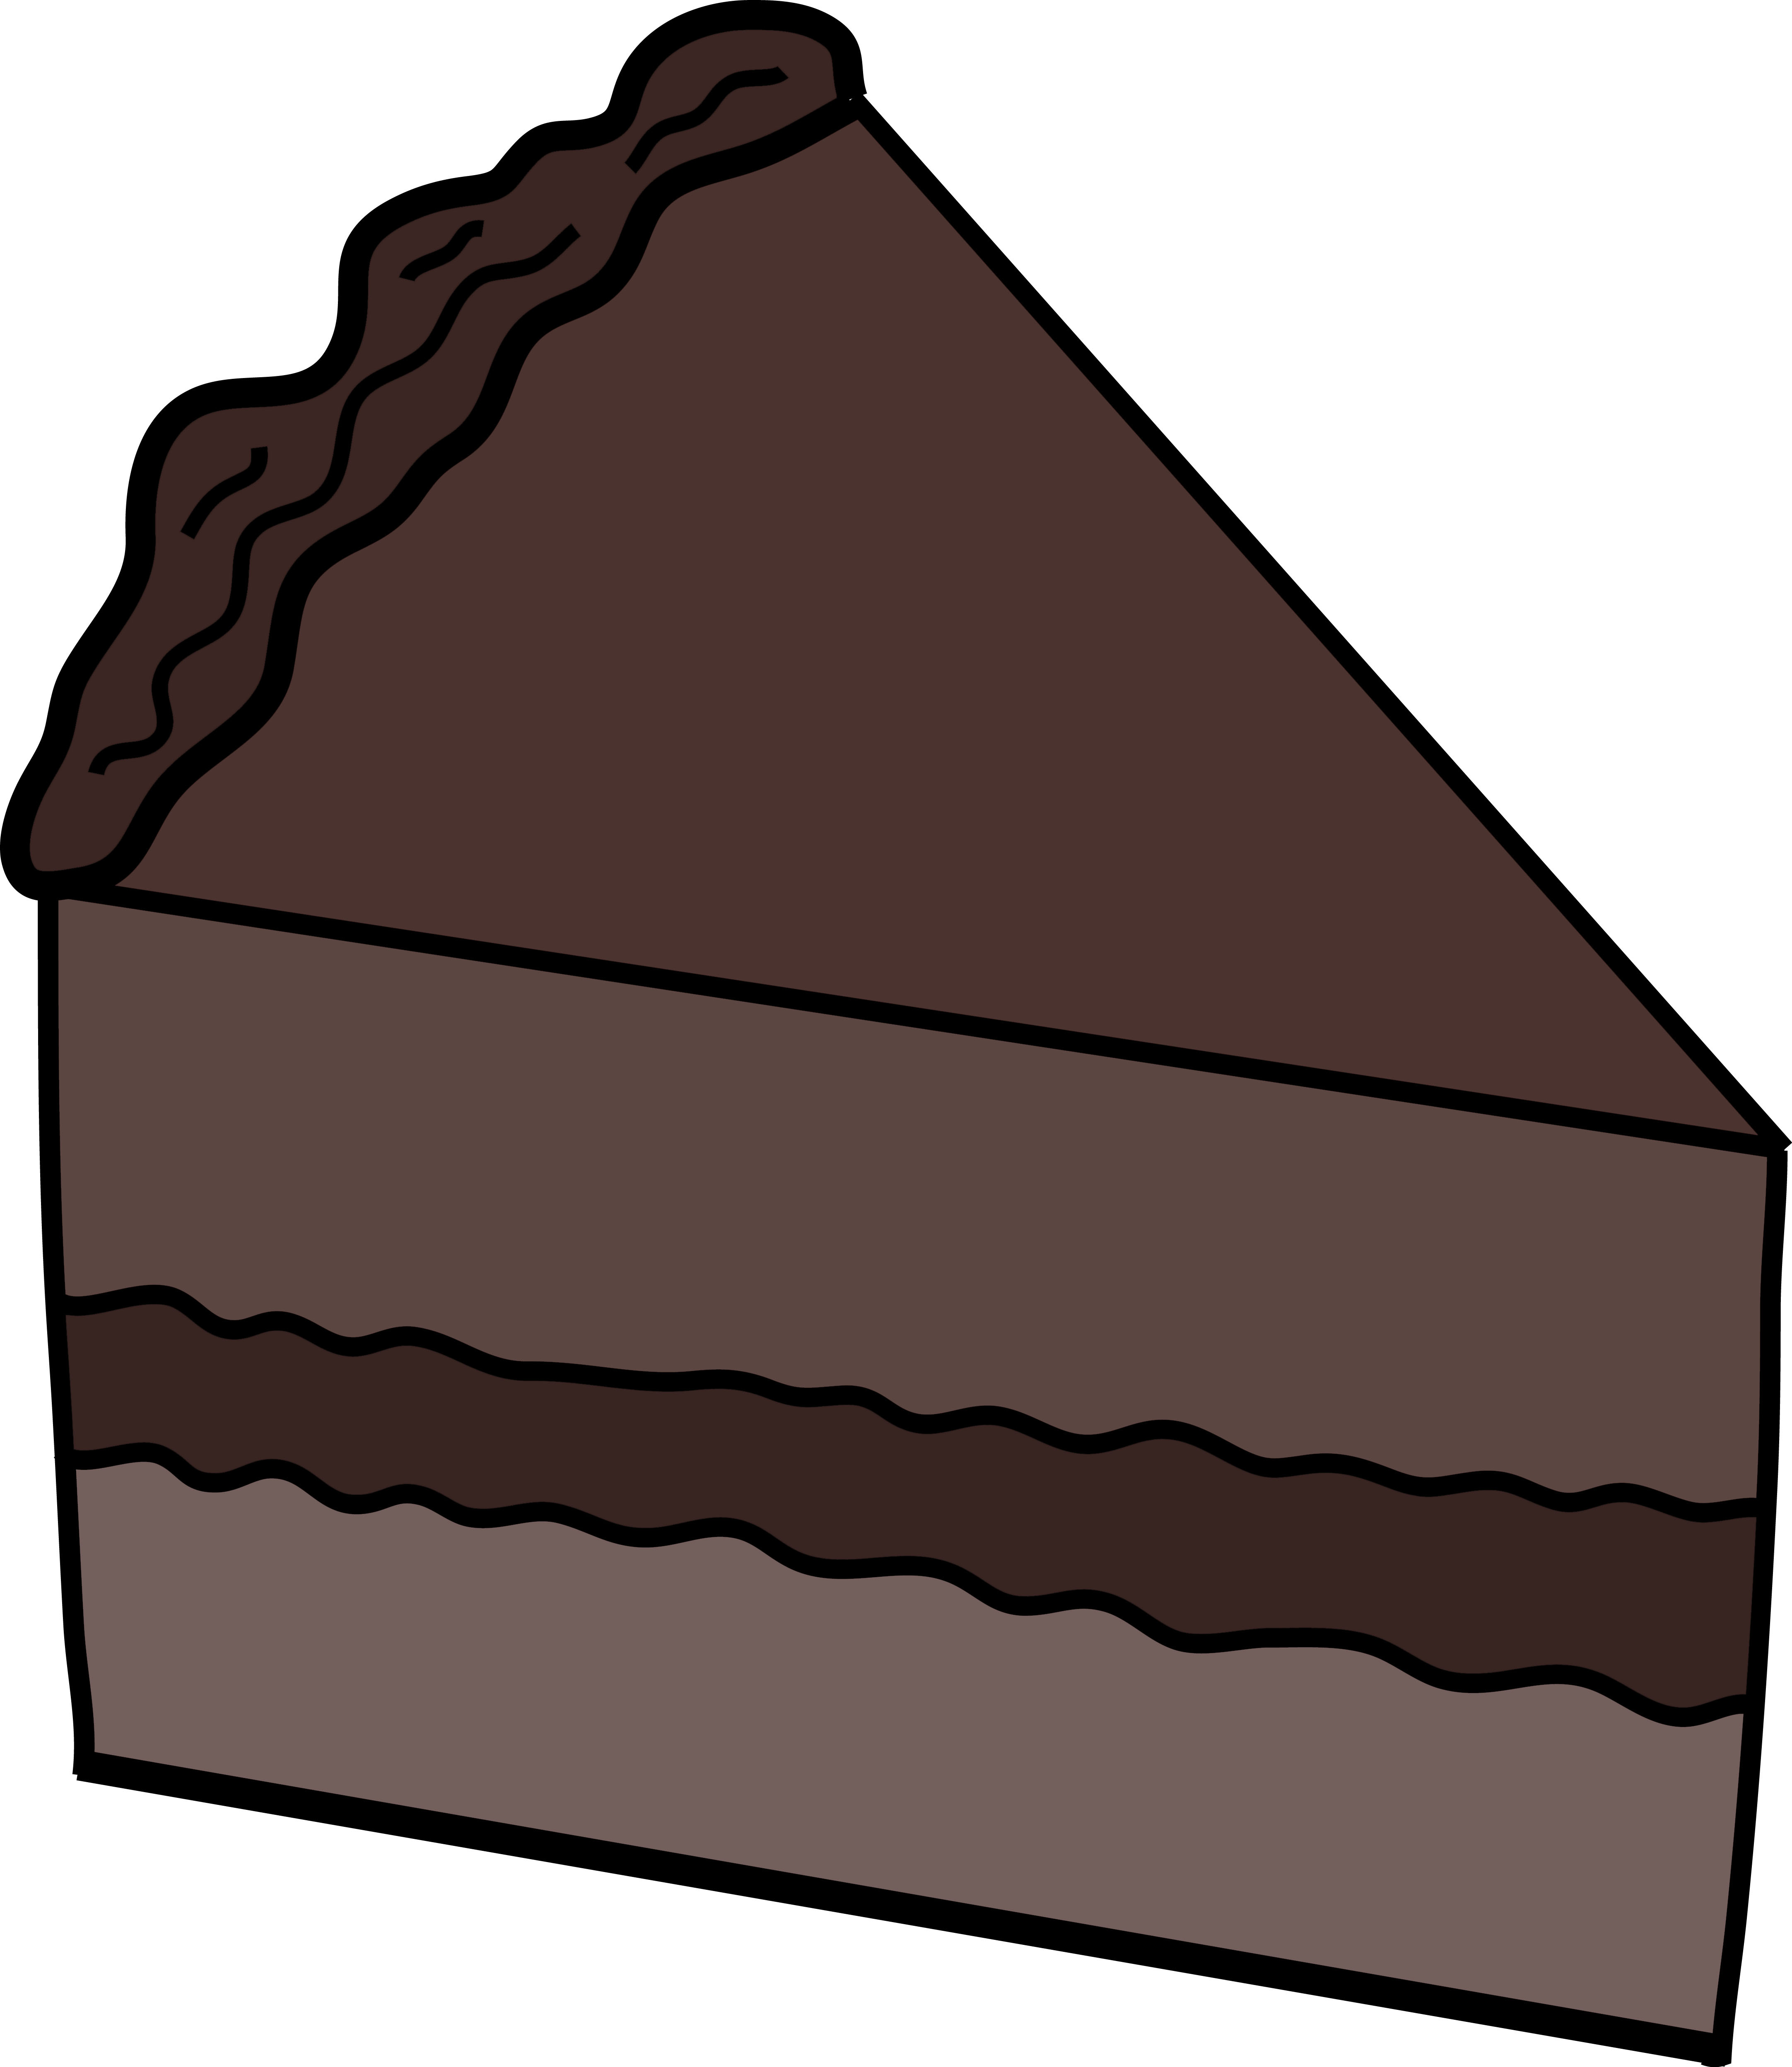 Cake Drawing Clip Art : Chocolate Cake - ClipArt Best